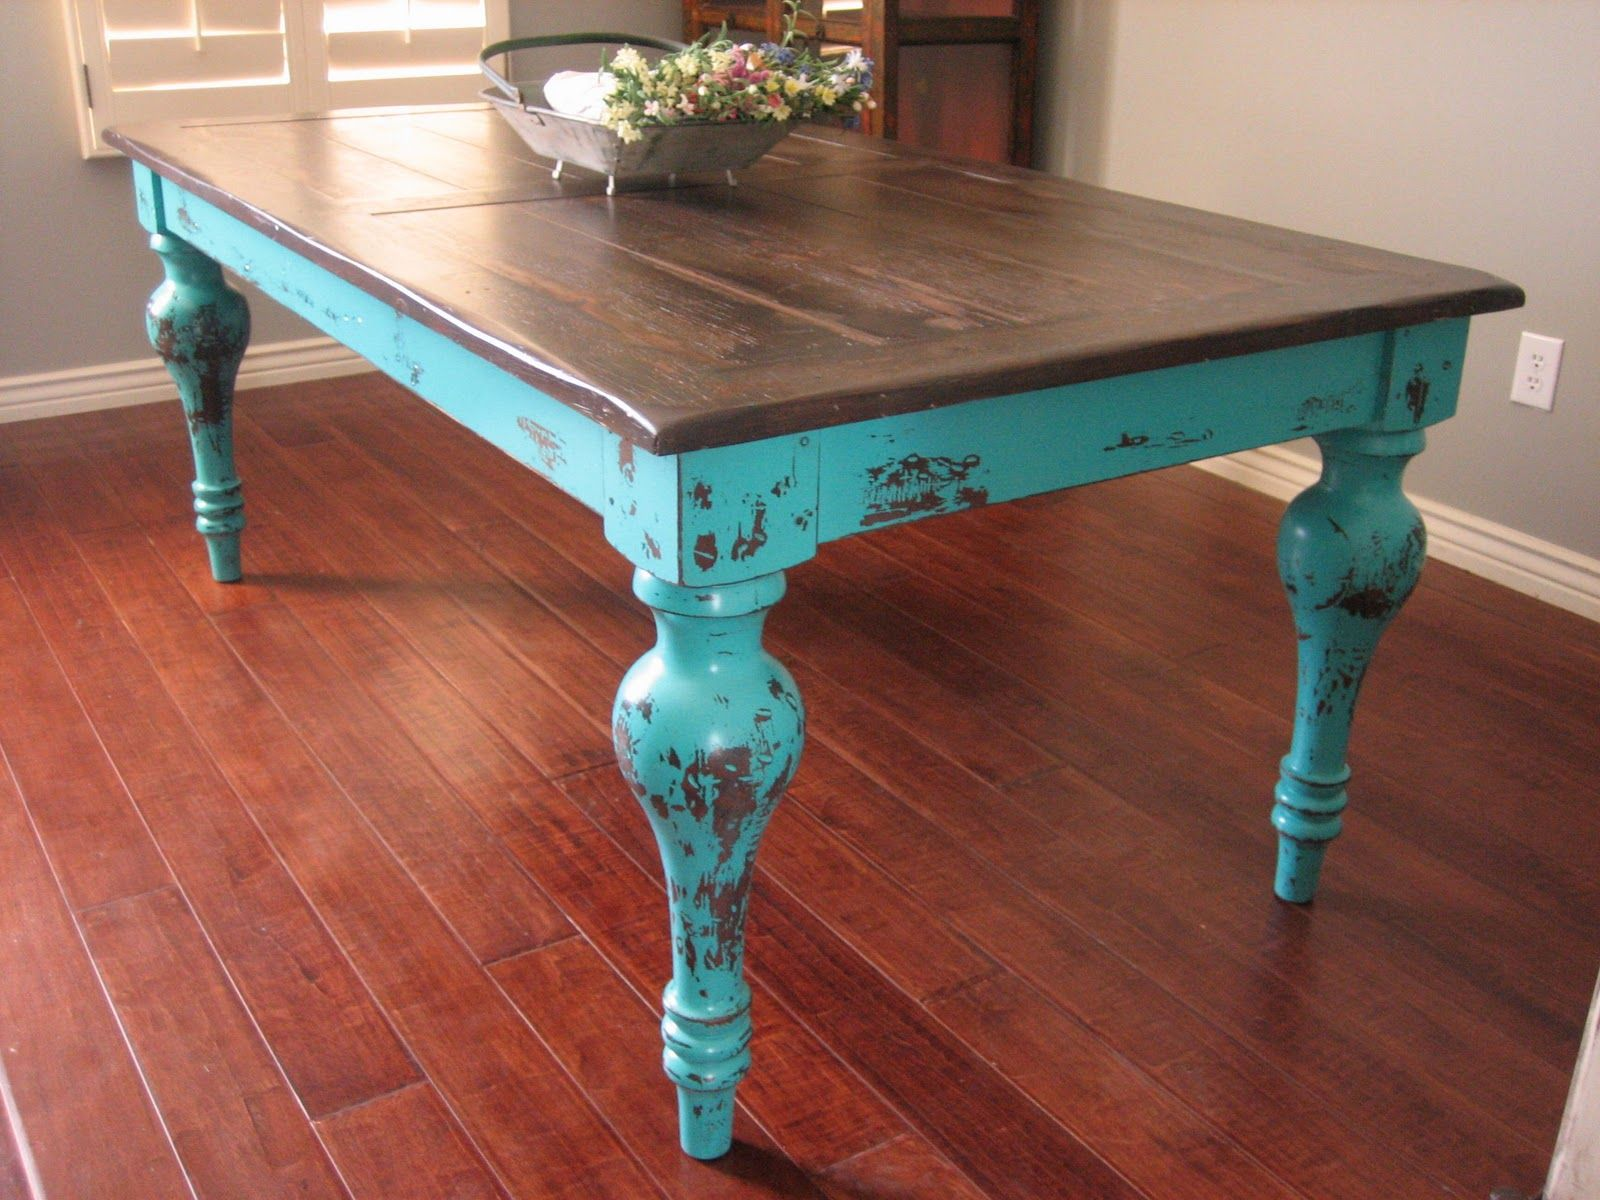 Antique rustic dining table - 17 Best Ideas About Rustic Dining Tables On Pinterest Rustic Wood Dining Table Rustic Dining Room Tables And Rustic Dining Table Set